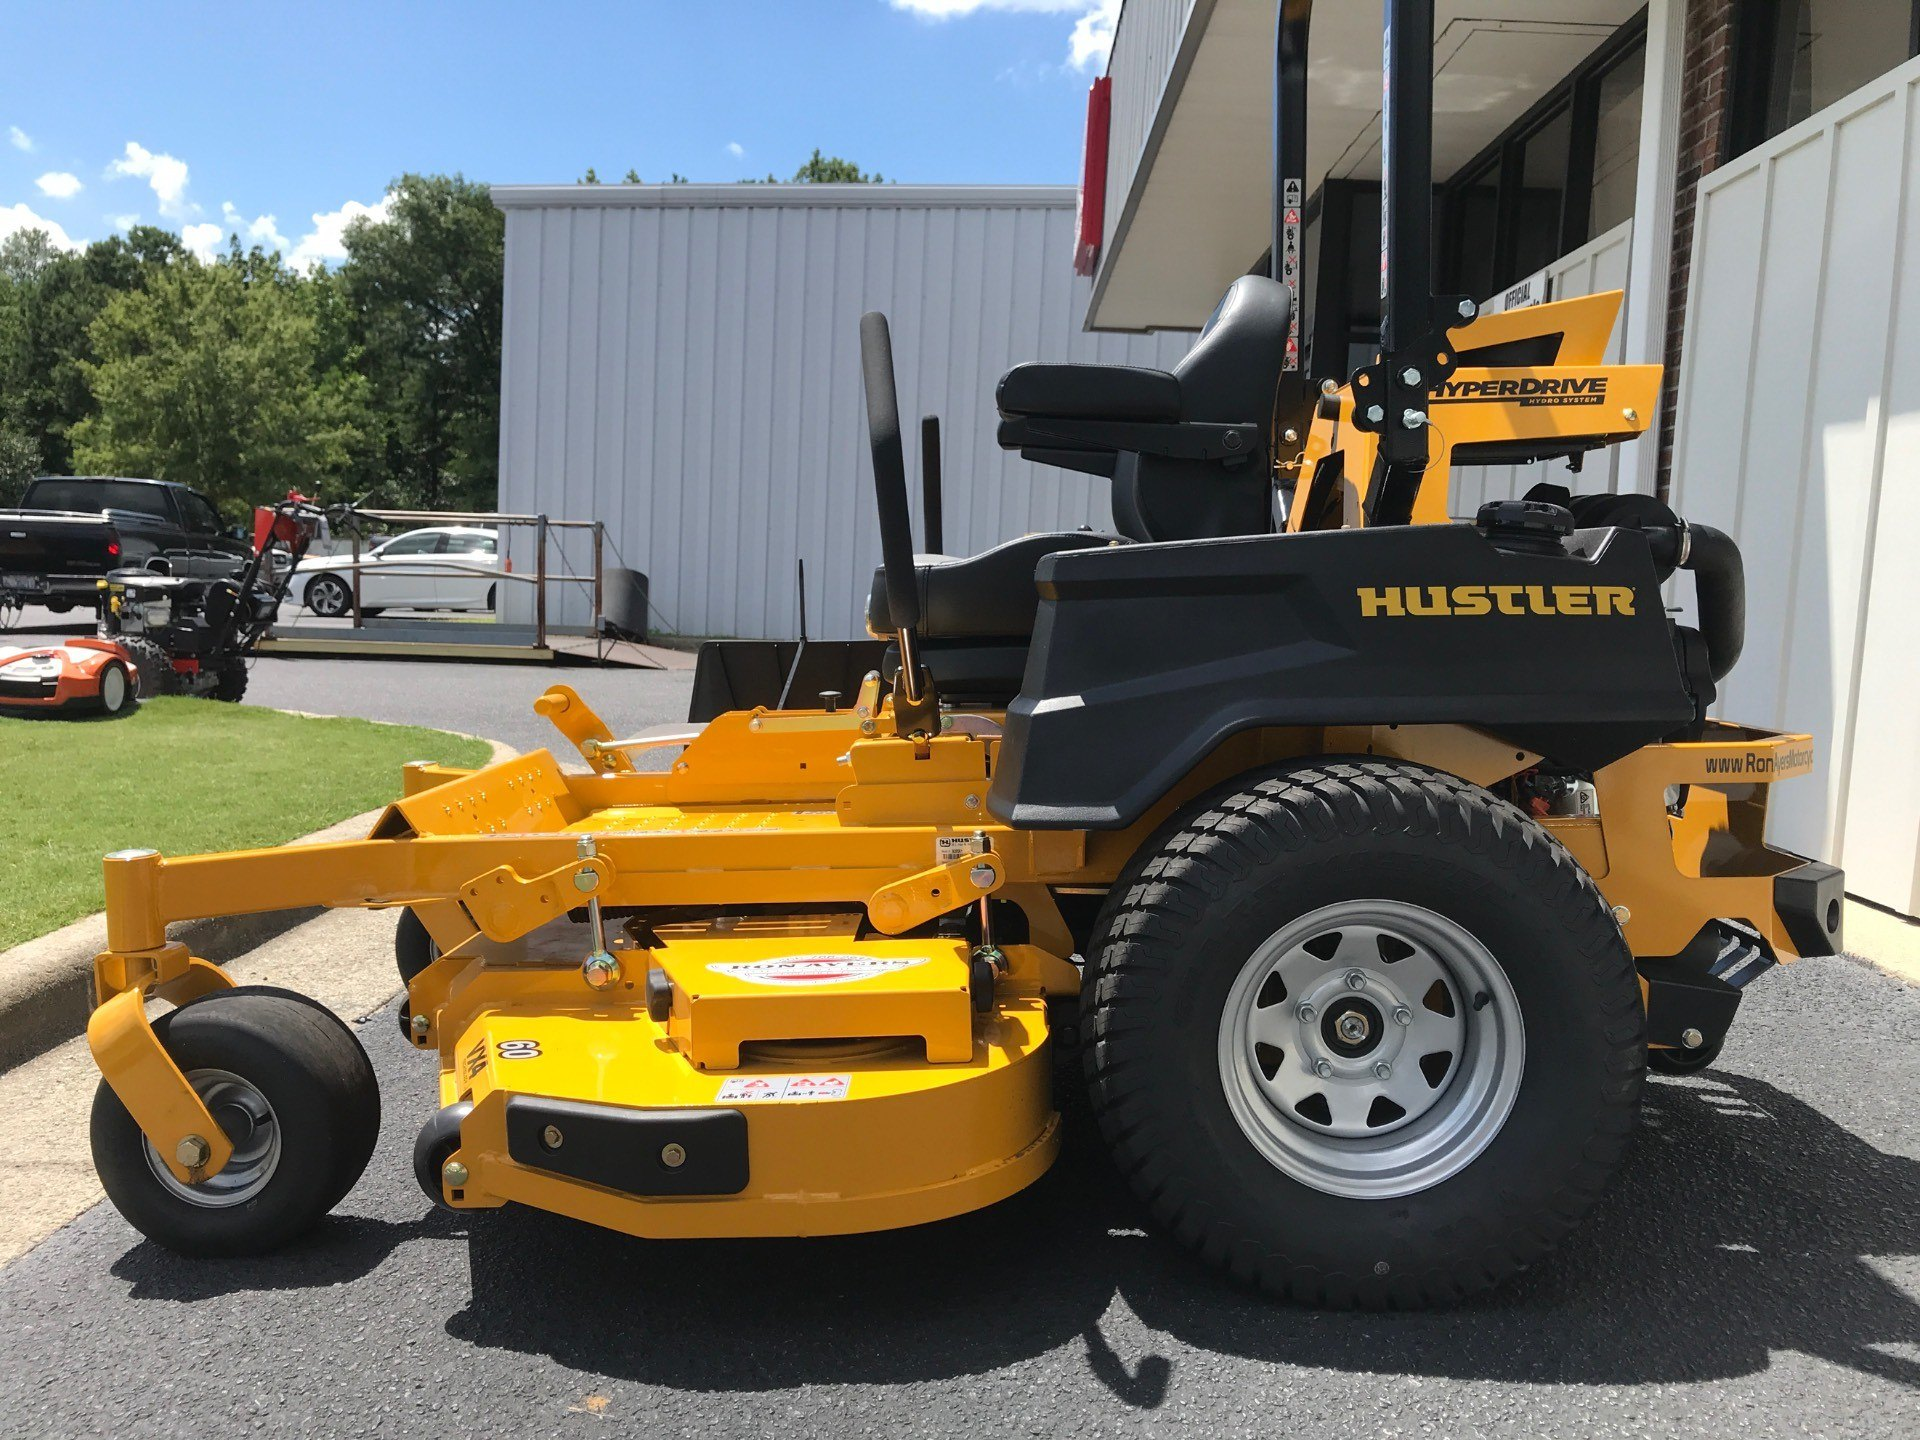 2020 Hustler Turf Equipment Super Z HyperDrive 60 in. Vanguard Big Block EFI 37 hp in Greenville, North Carolina - Photo 3